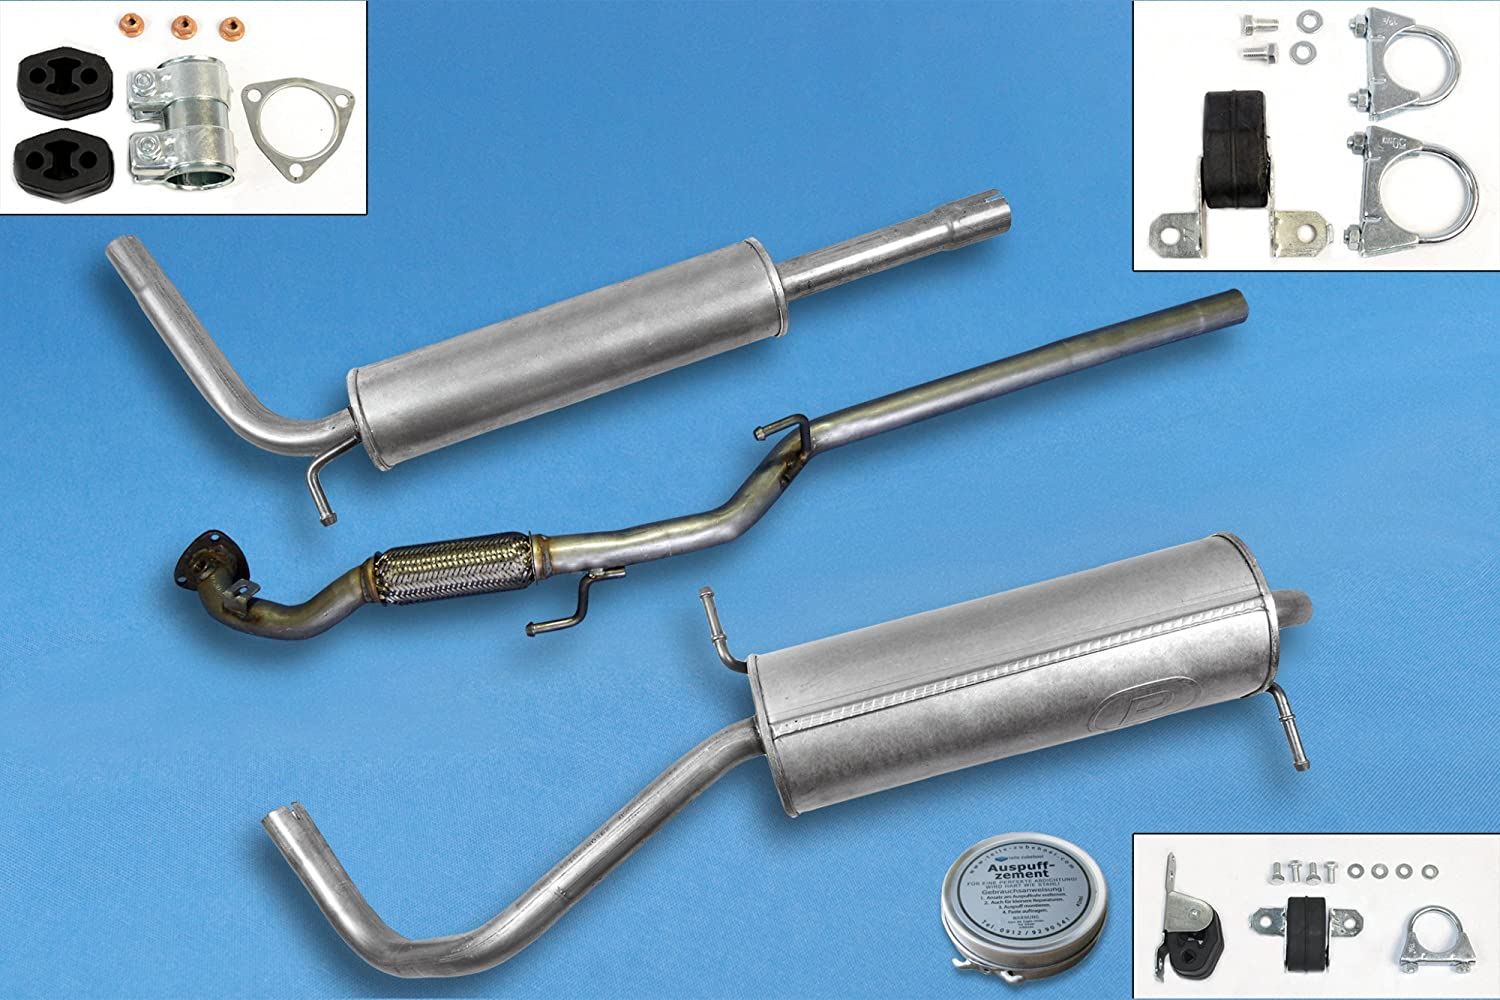 9N 1.2 Hatchback 2001-2005 Full exhaust from CAT